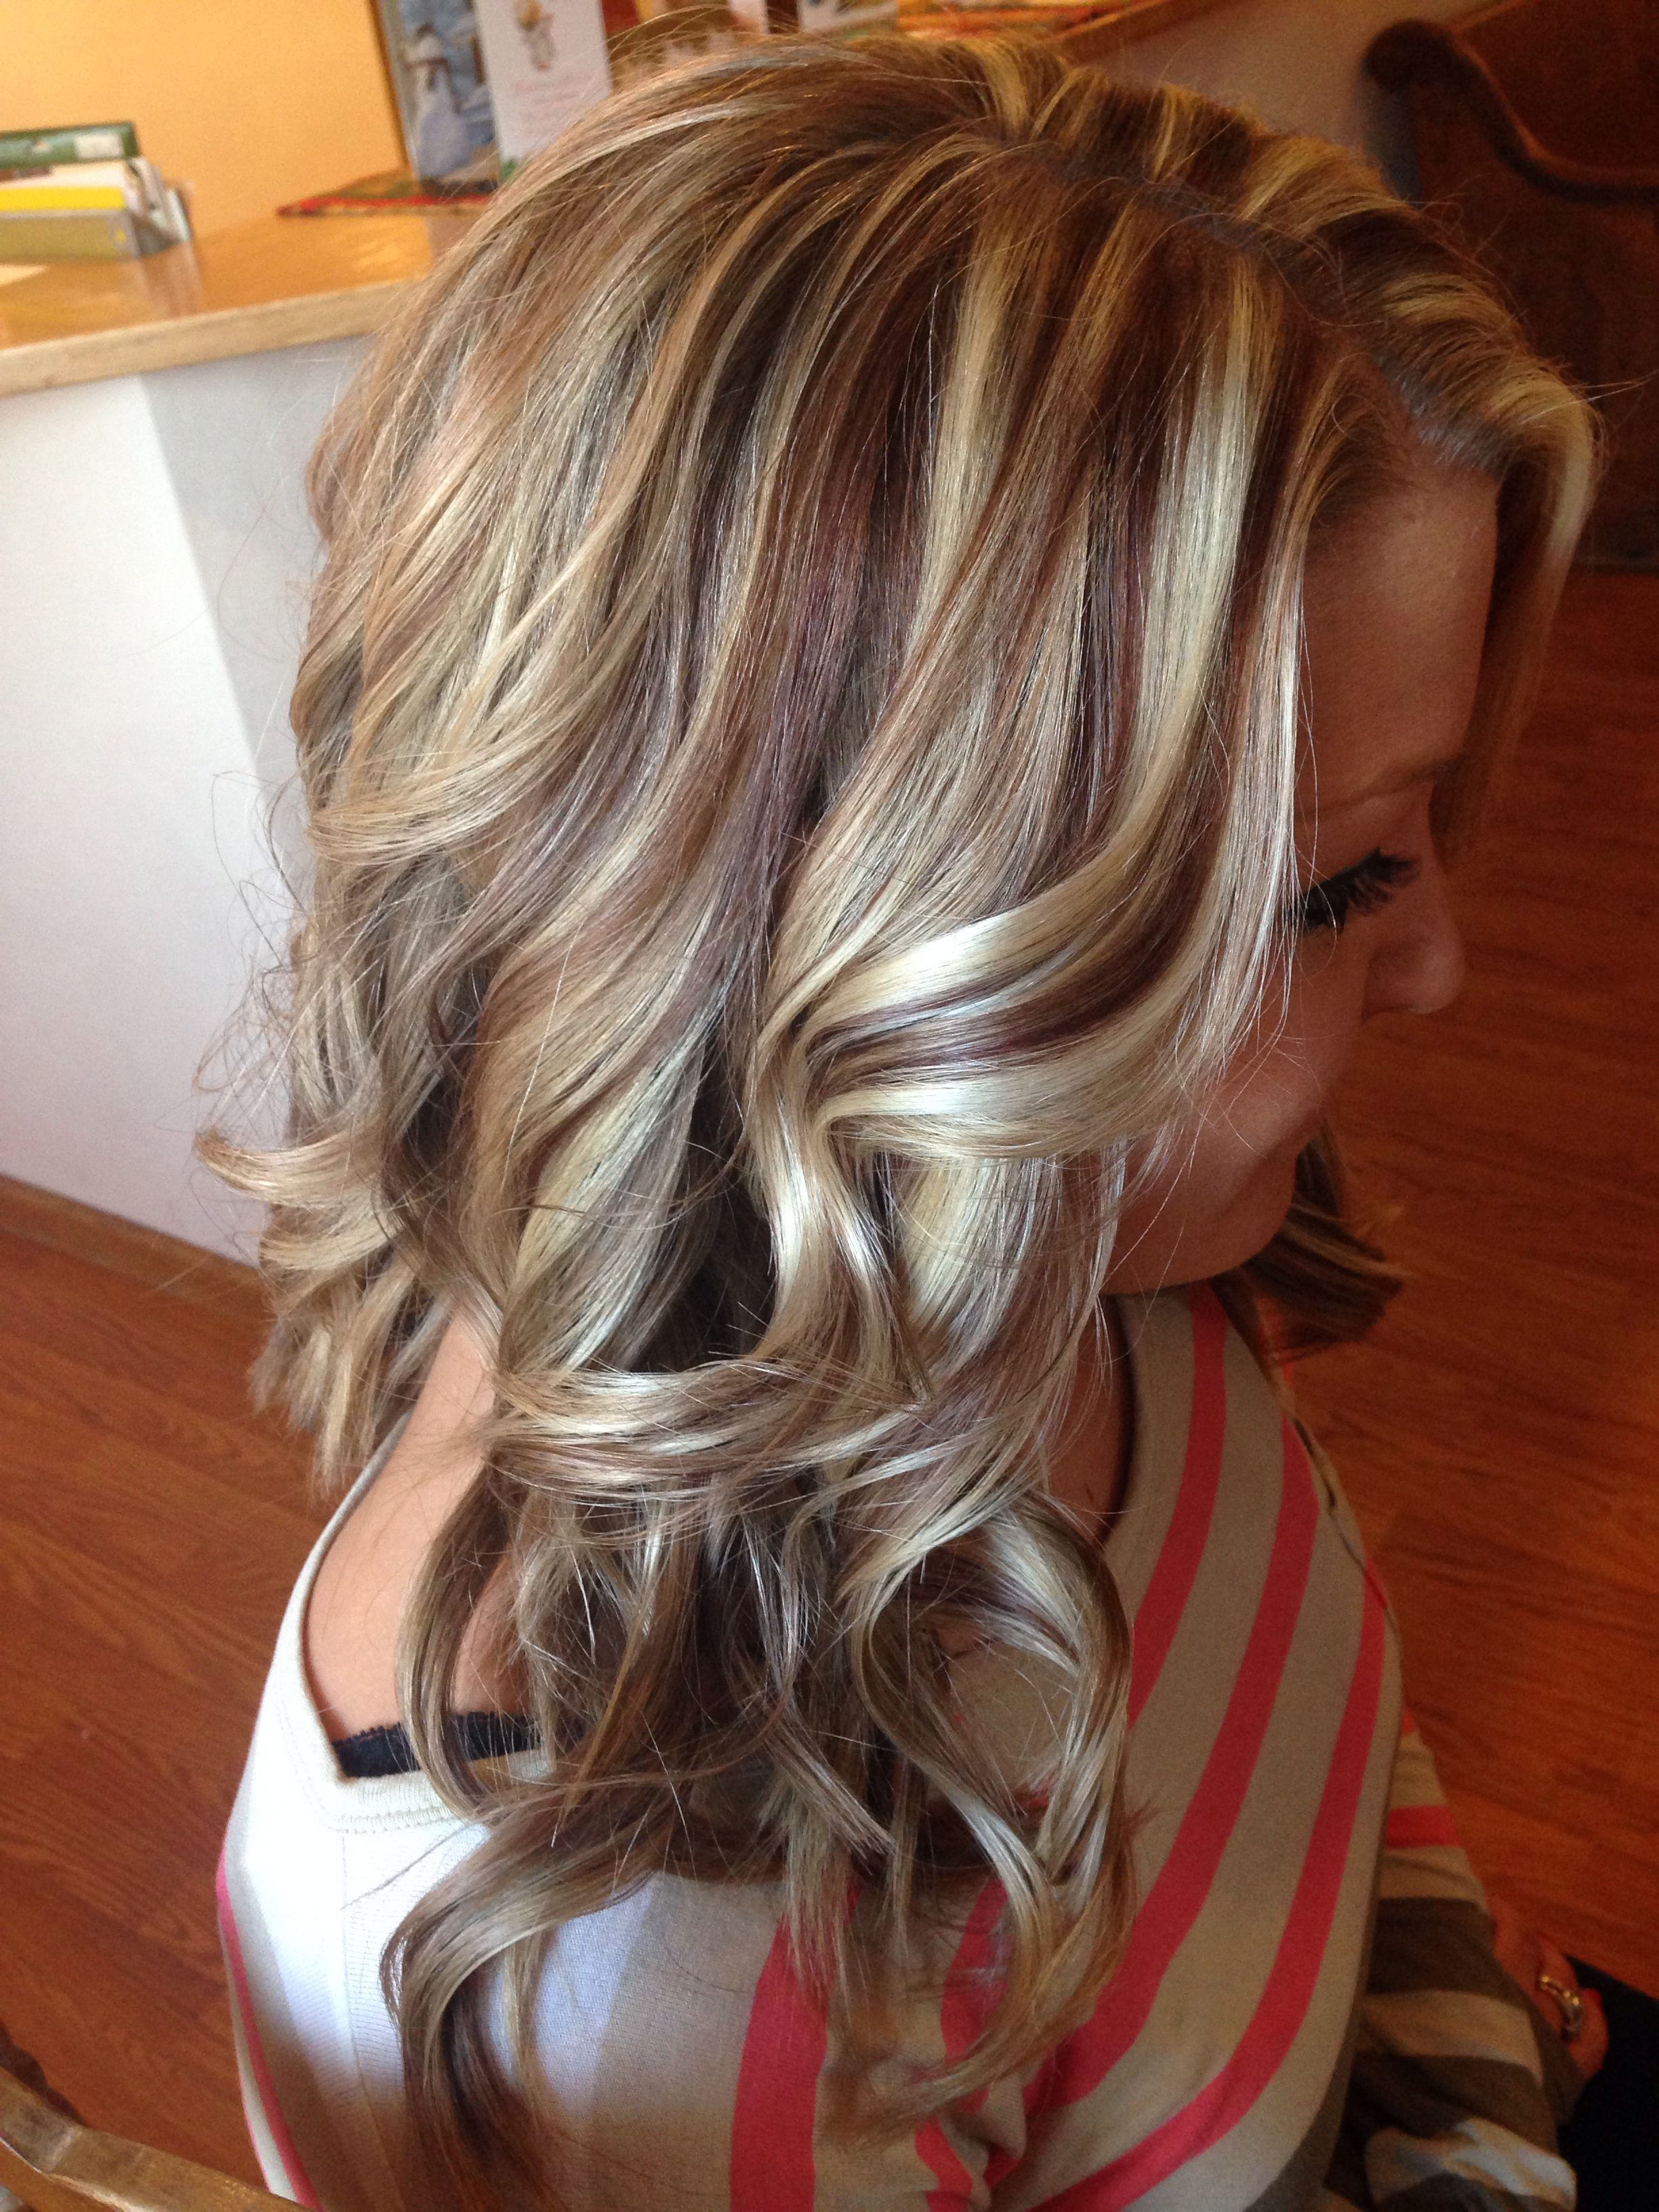 Bcbr beauty pinterest hair coloring red highlights